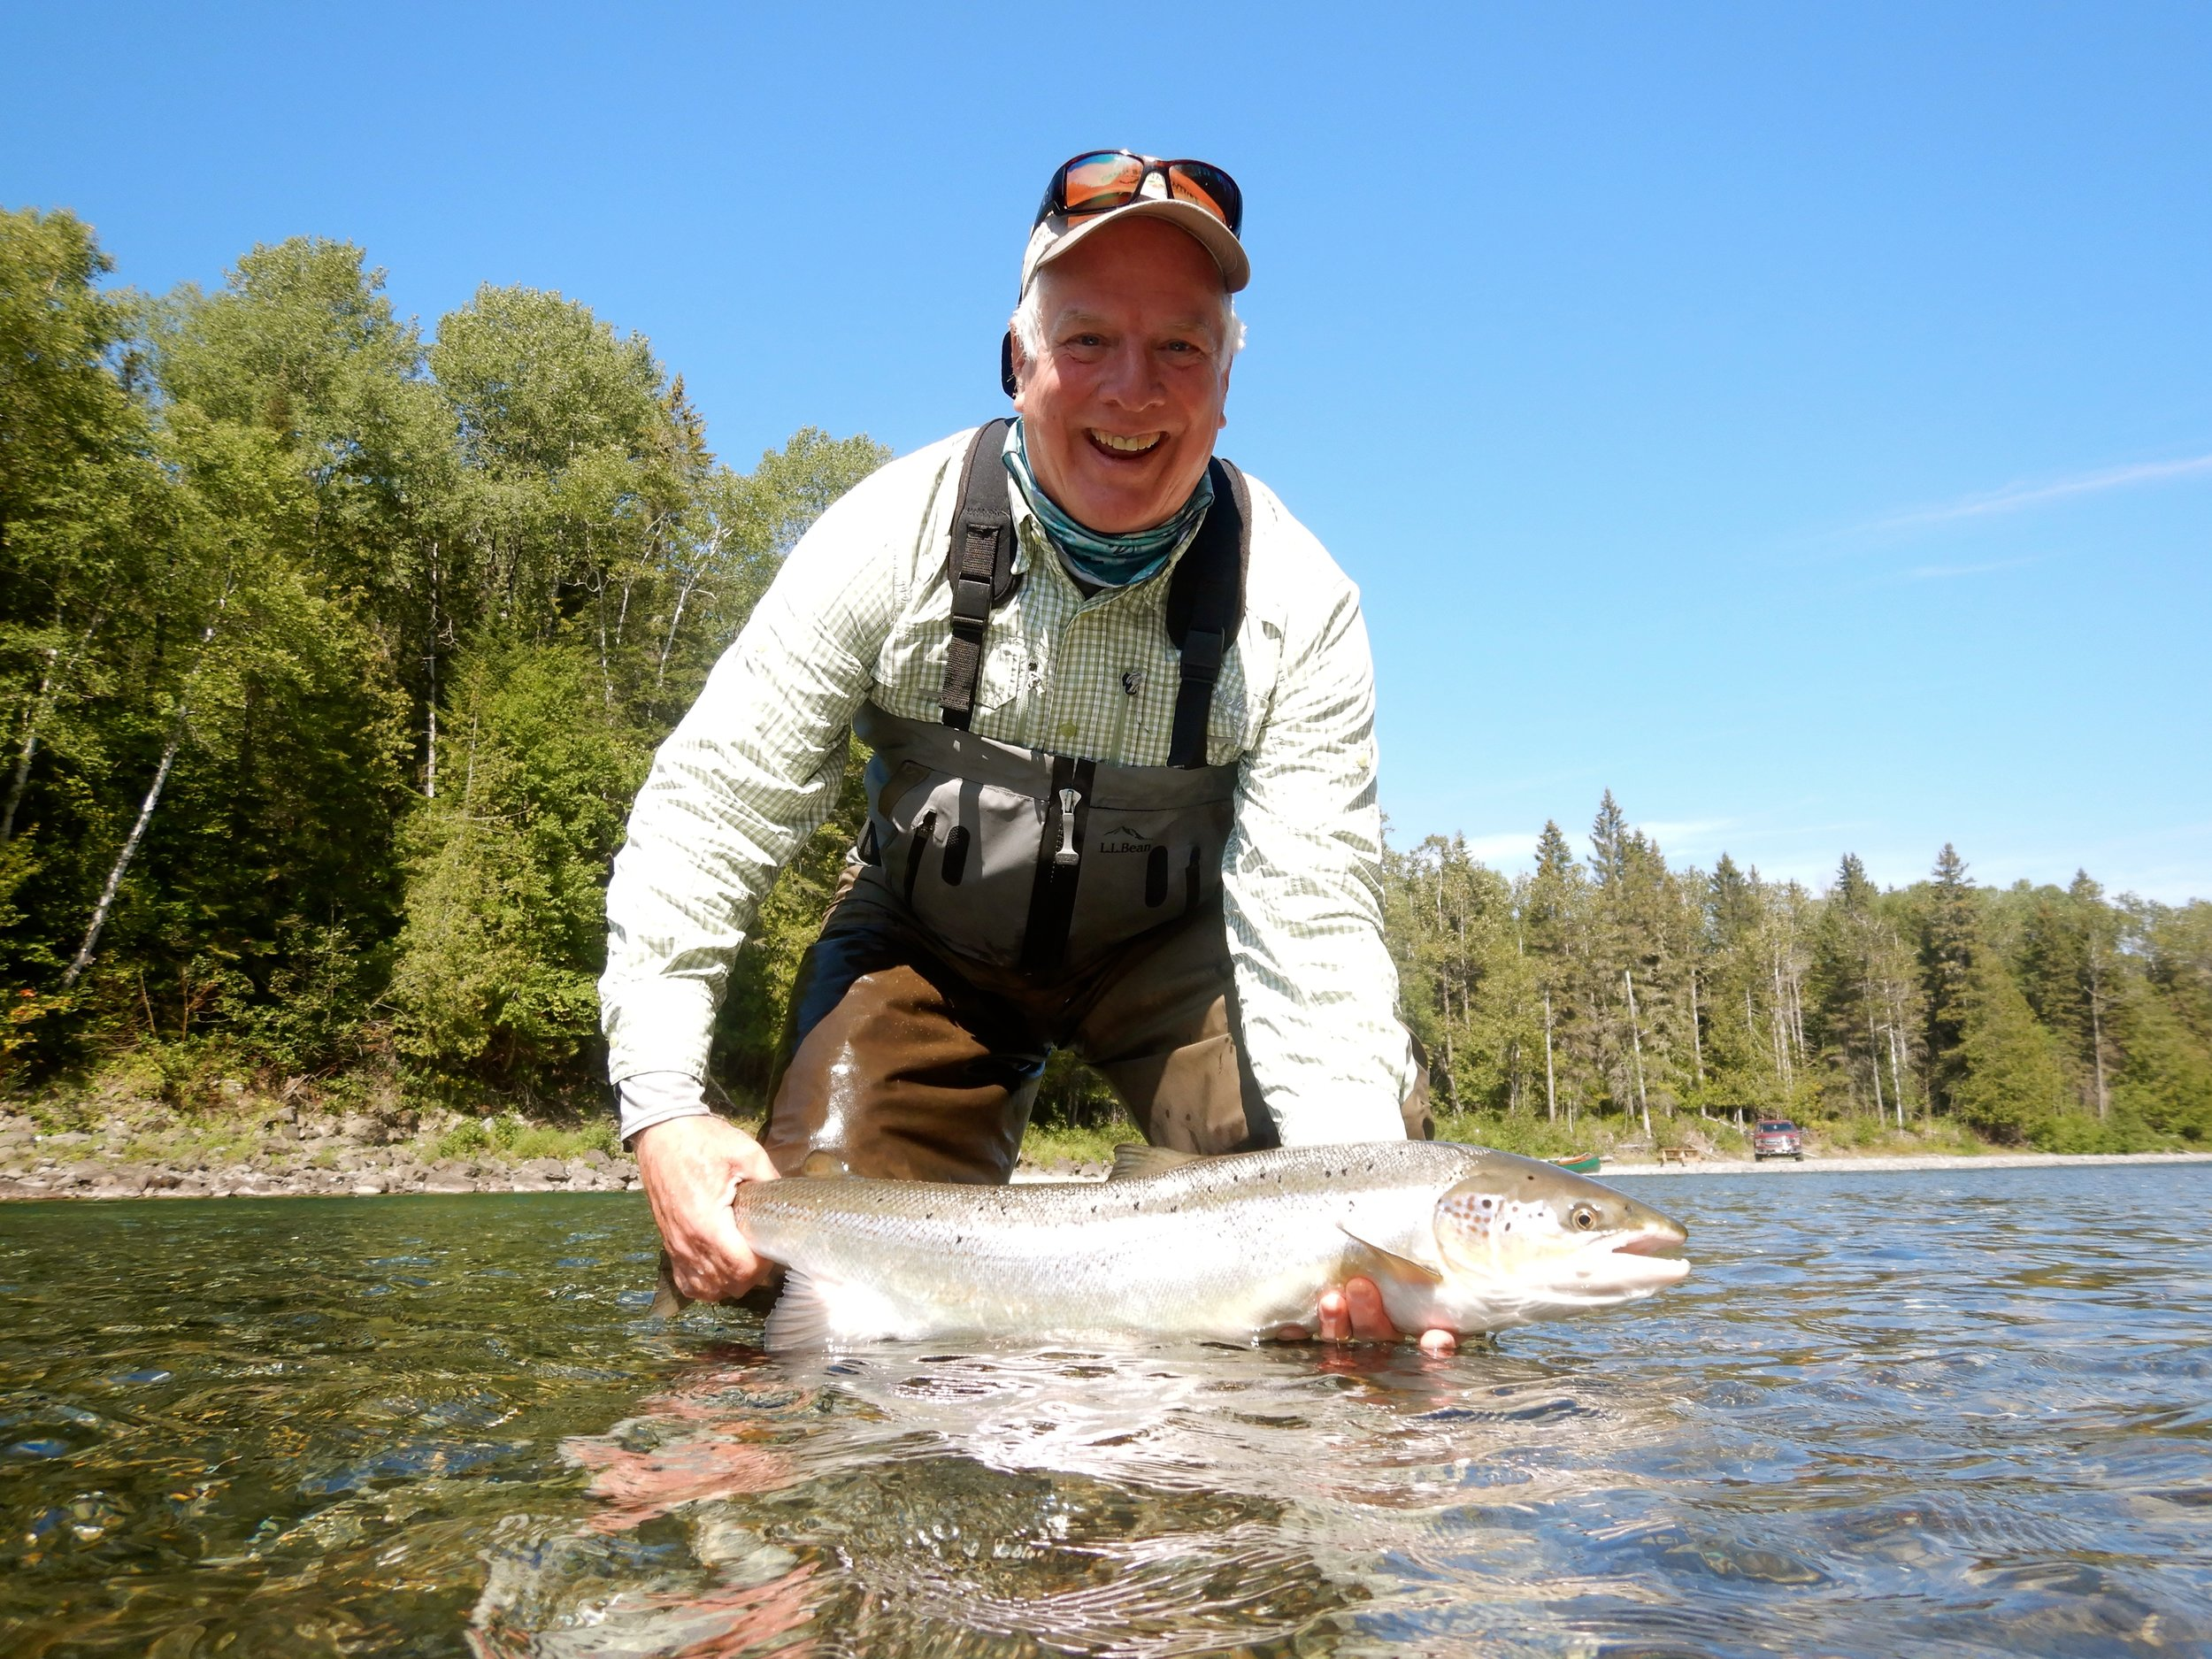 Tom Stoker's streak of bad luck finally came to an end on the Bonaventure River! Congrats Tom!